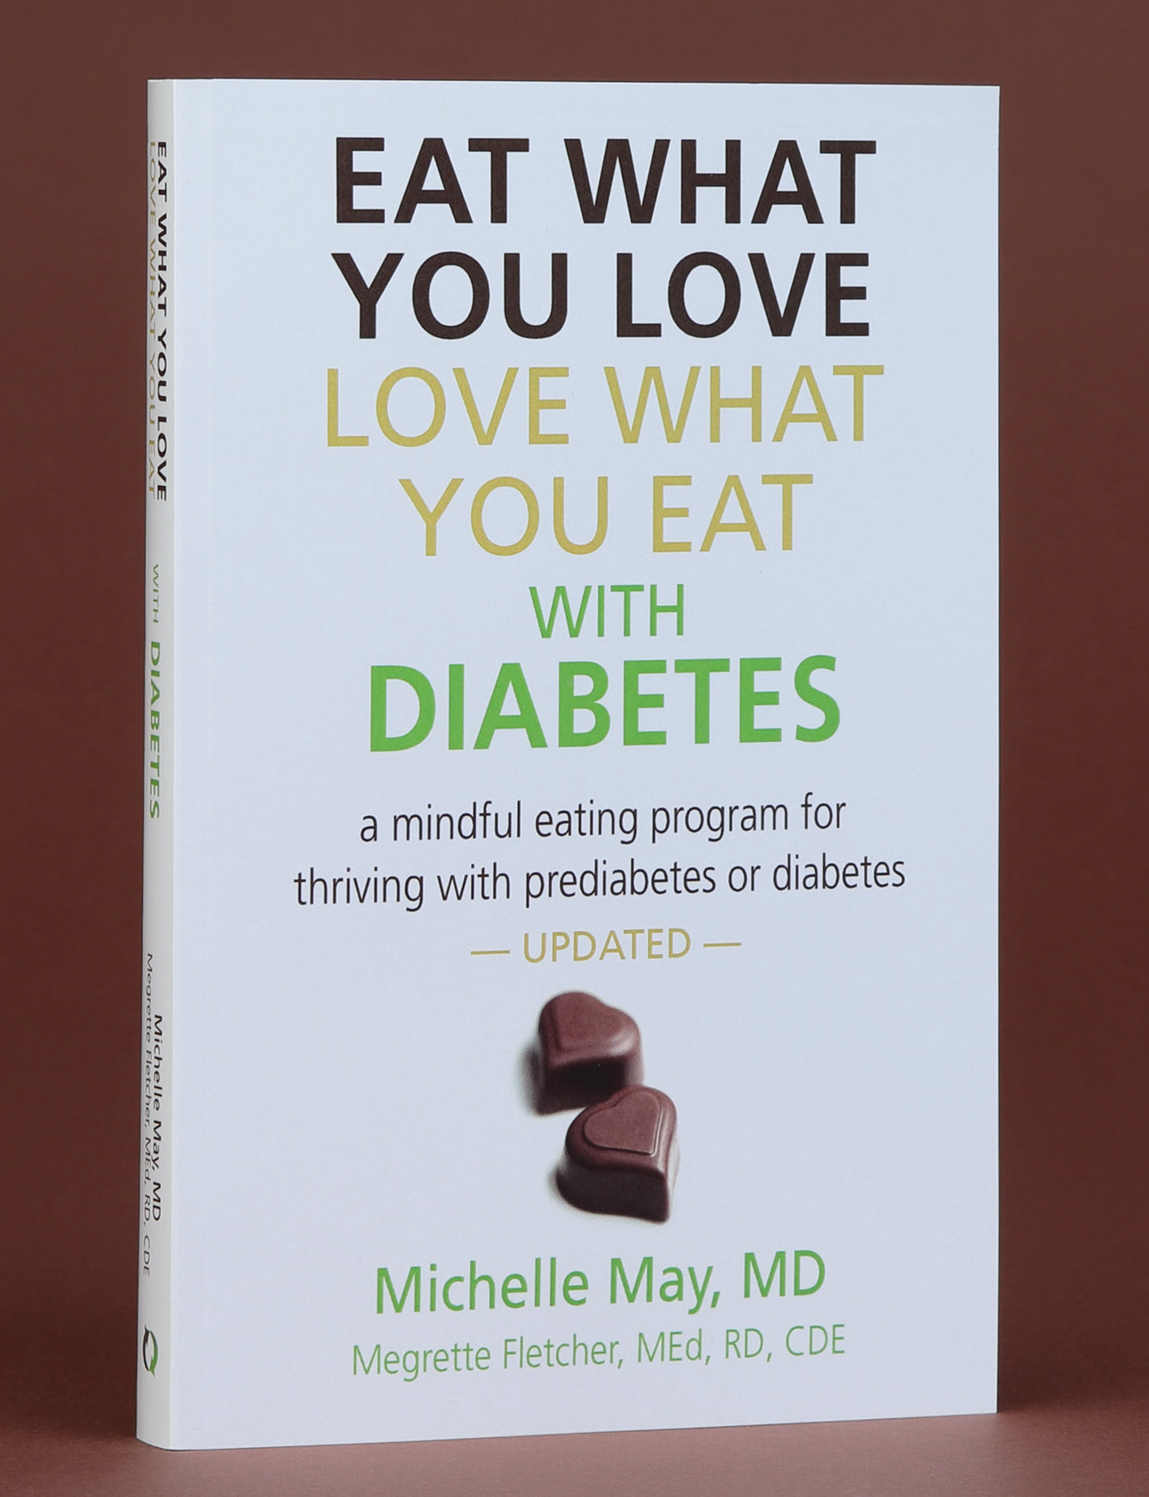 Image of the book Eat What You Love, Love What You Eat with Diabetes by Michelle May and Megrette Fletcher